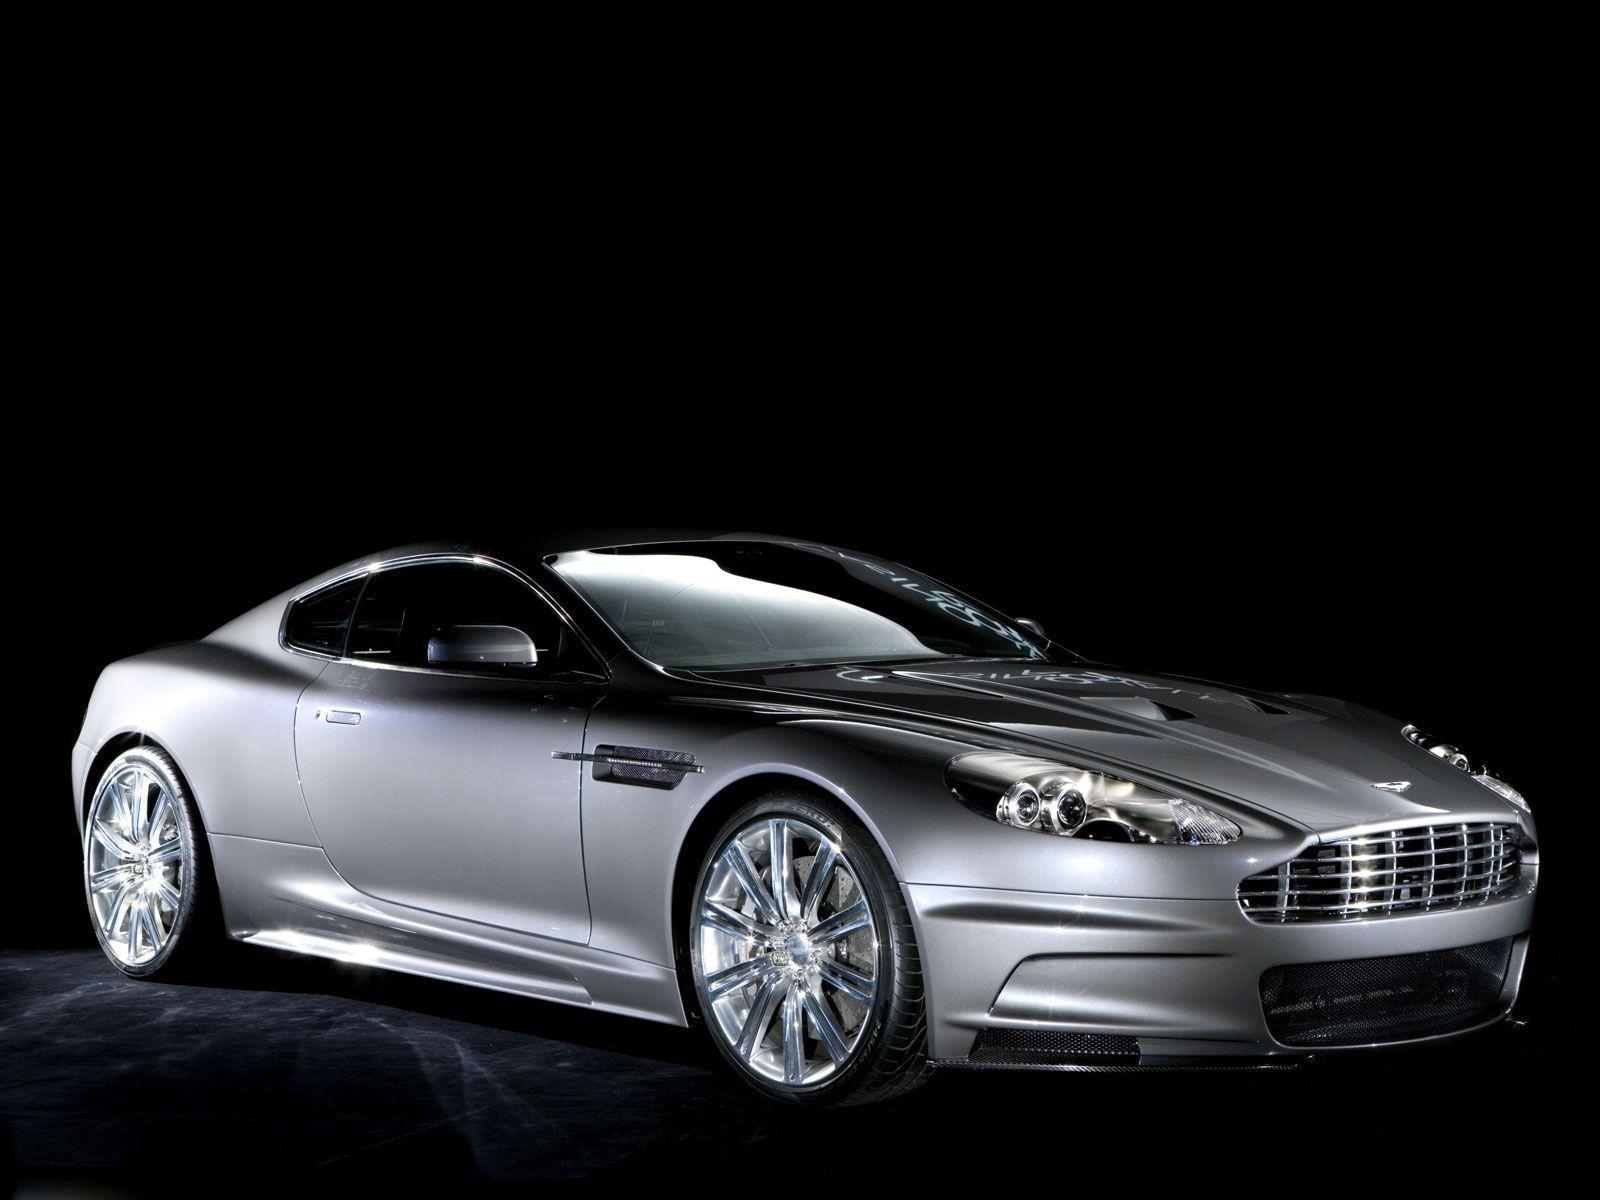 Wallpapers For > Black Aston Martin Dbs Wallpapers